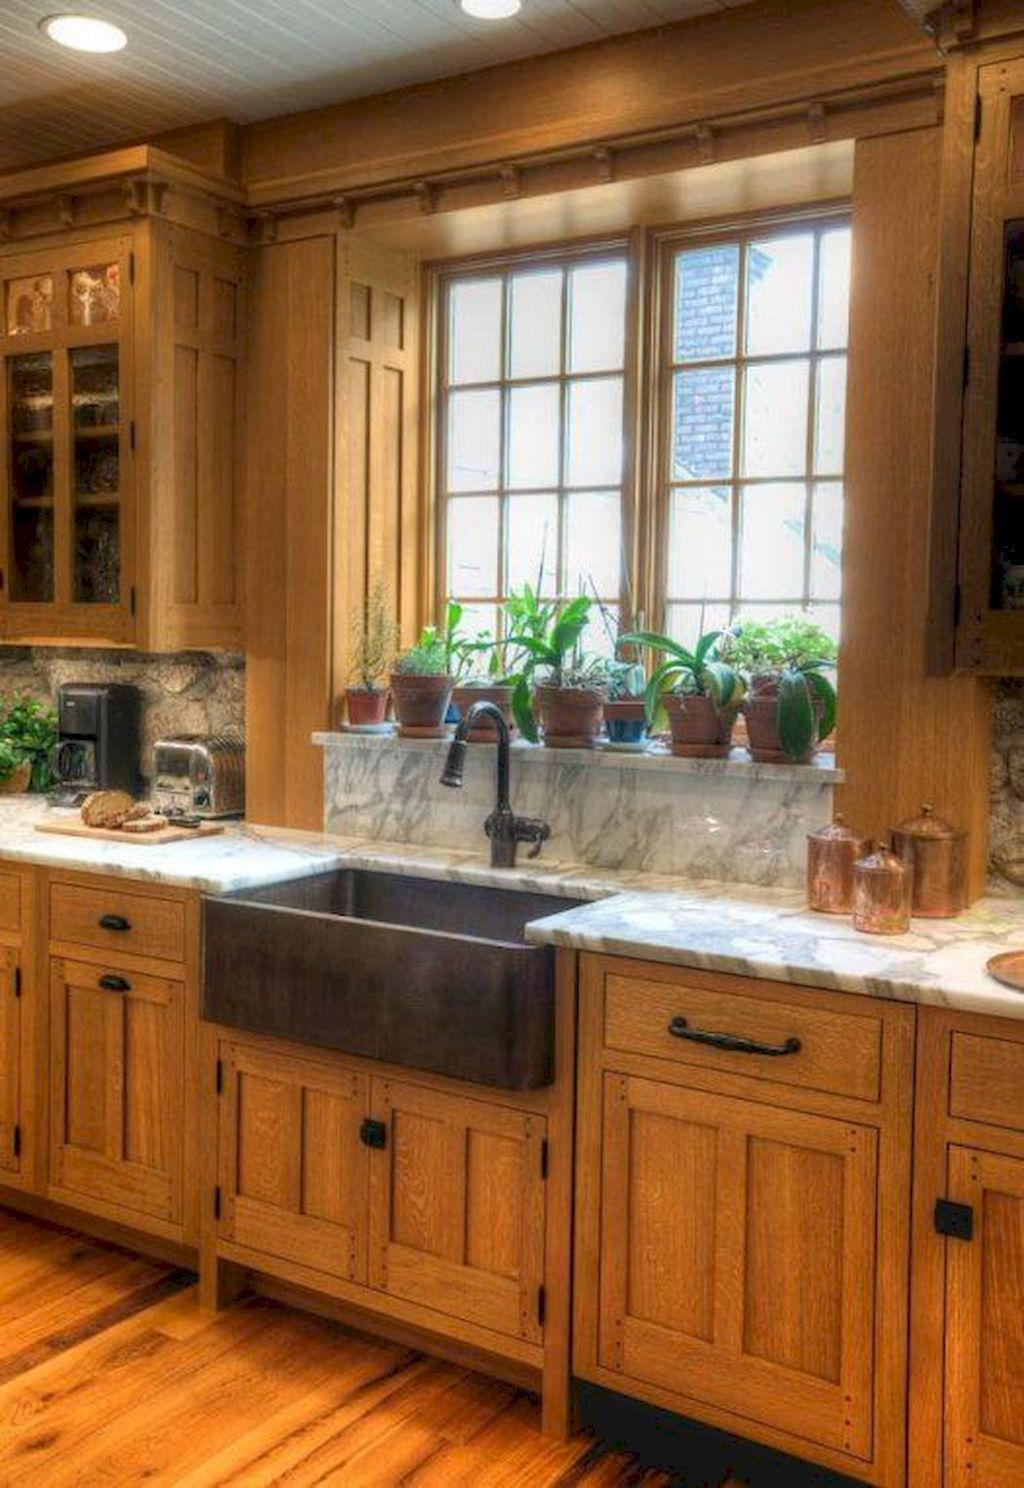 Pin by Macy Steele on Dream home | Log home kitchens ...